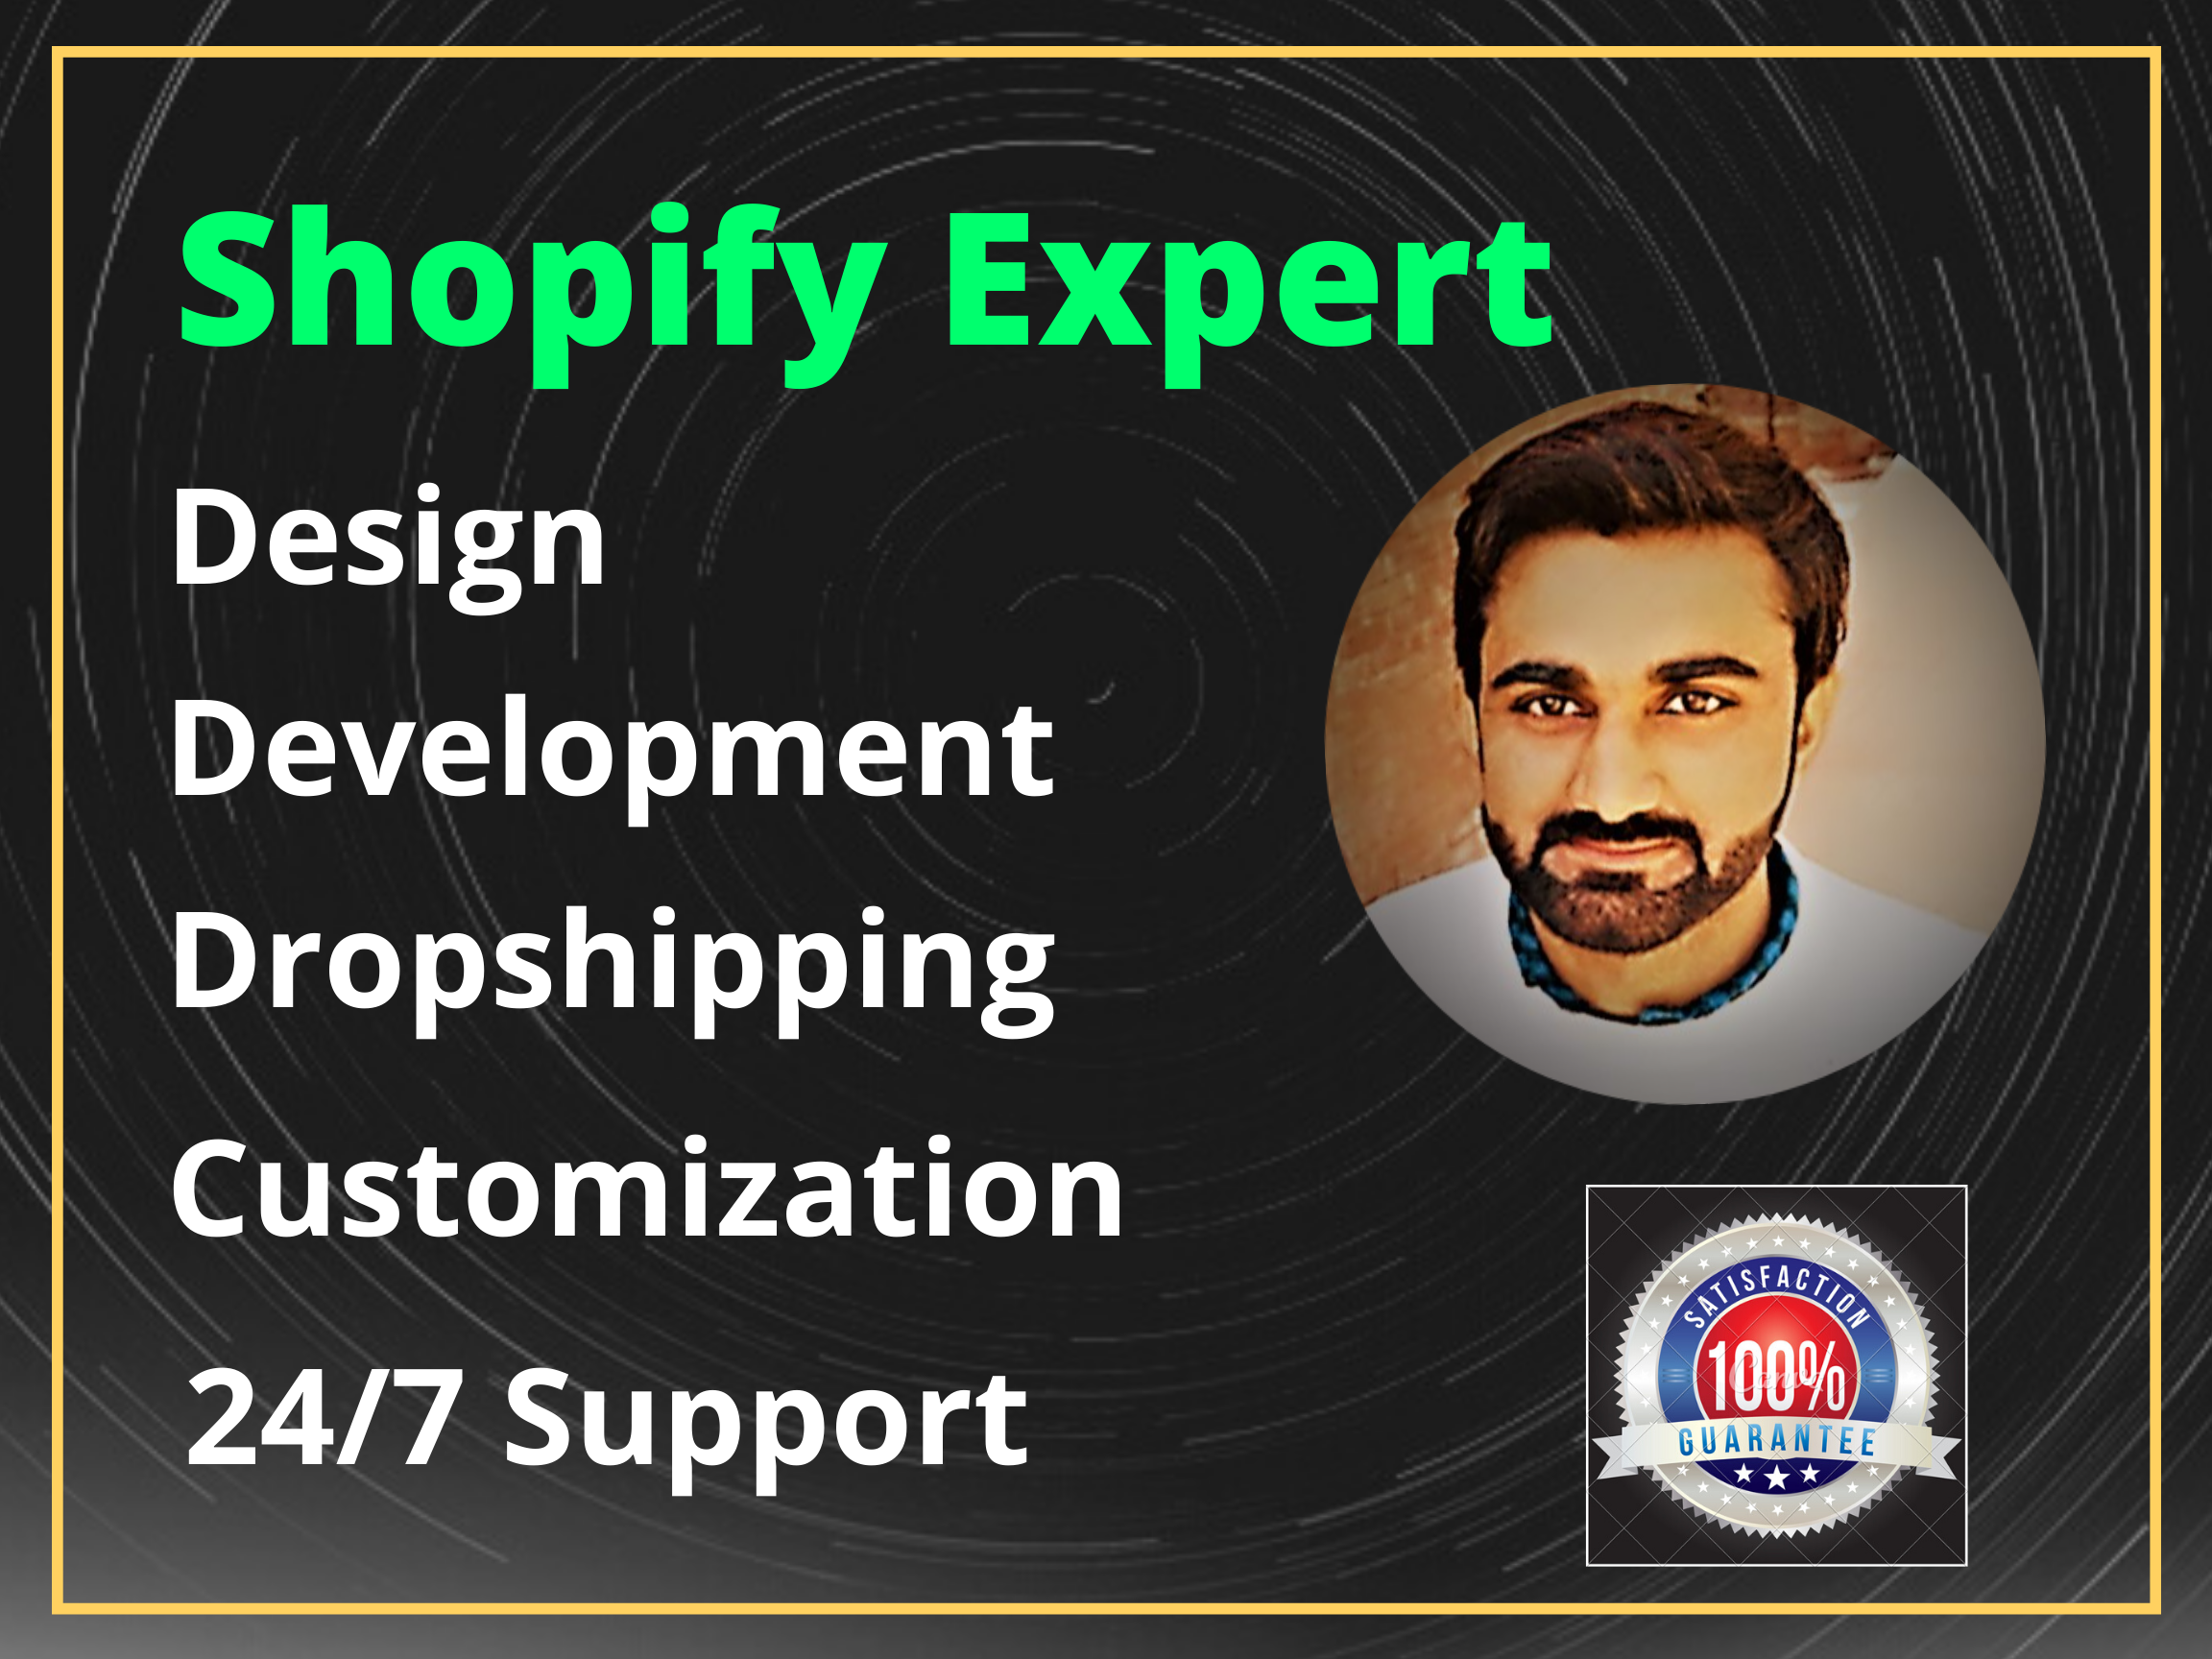 I will marketing and design shopify SEO based dropshipping store or website